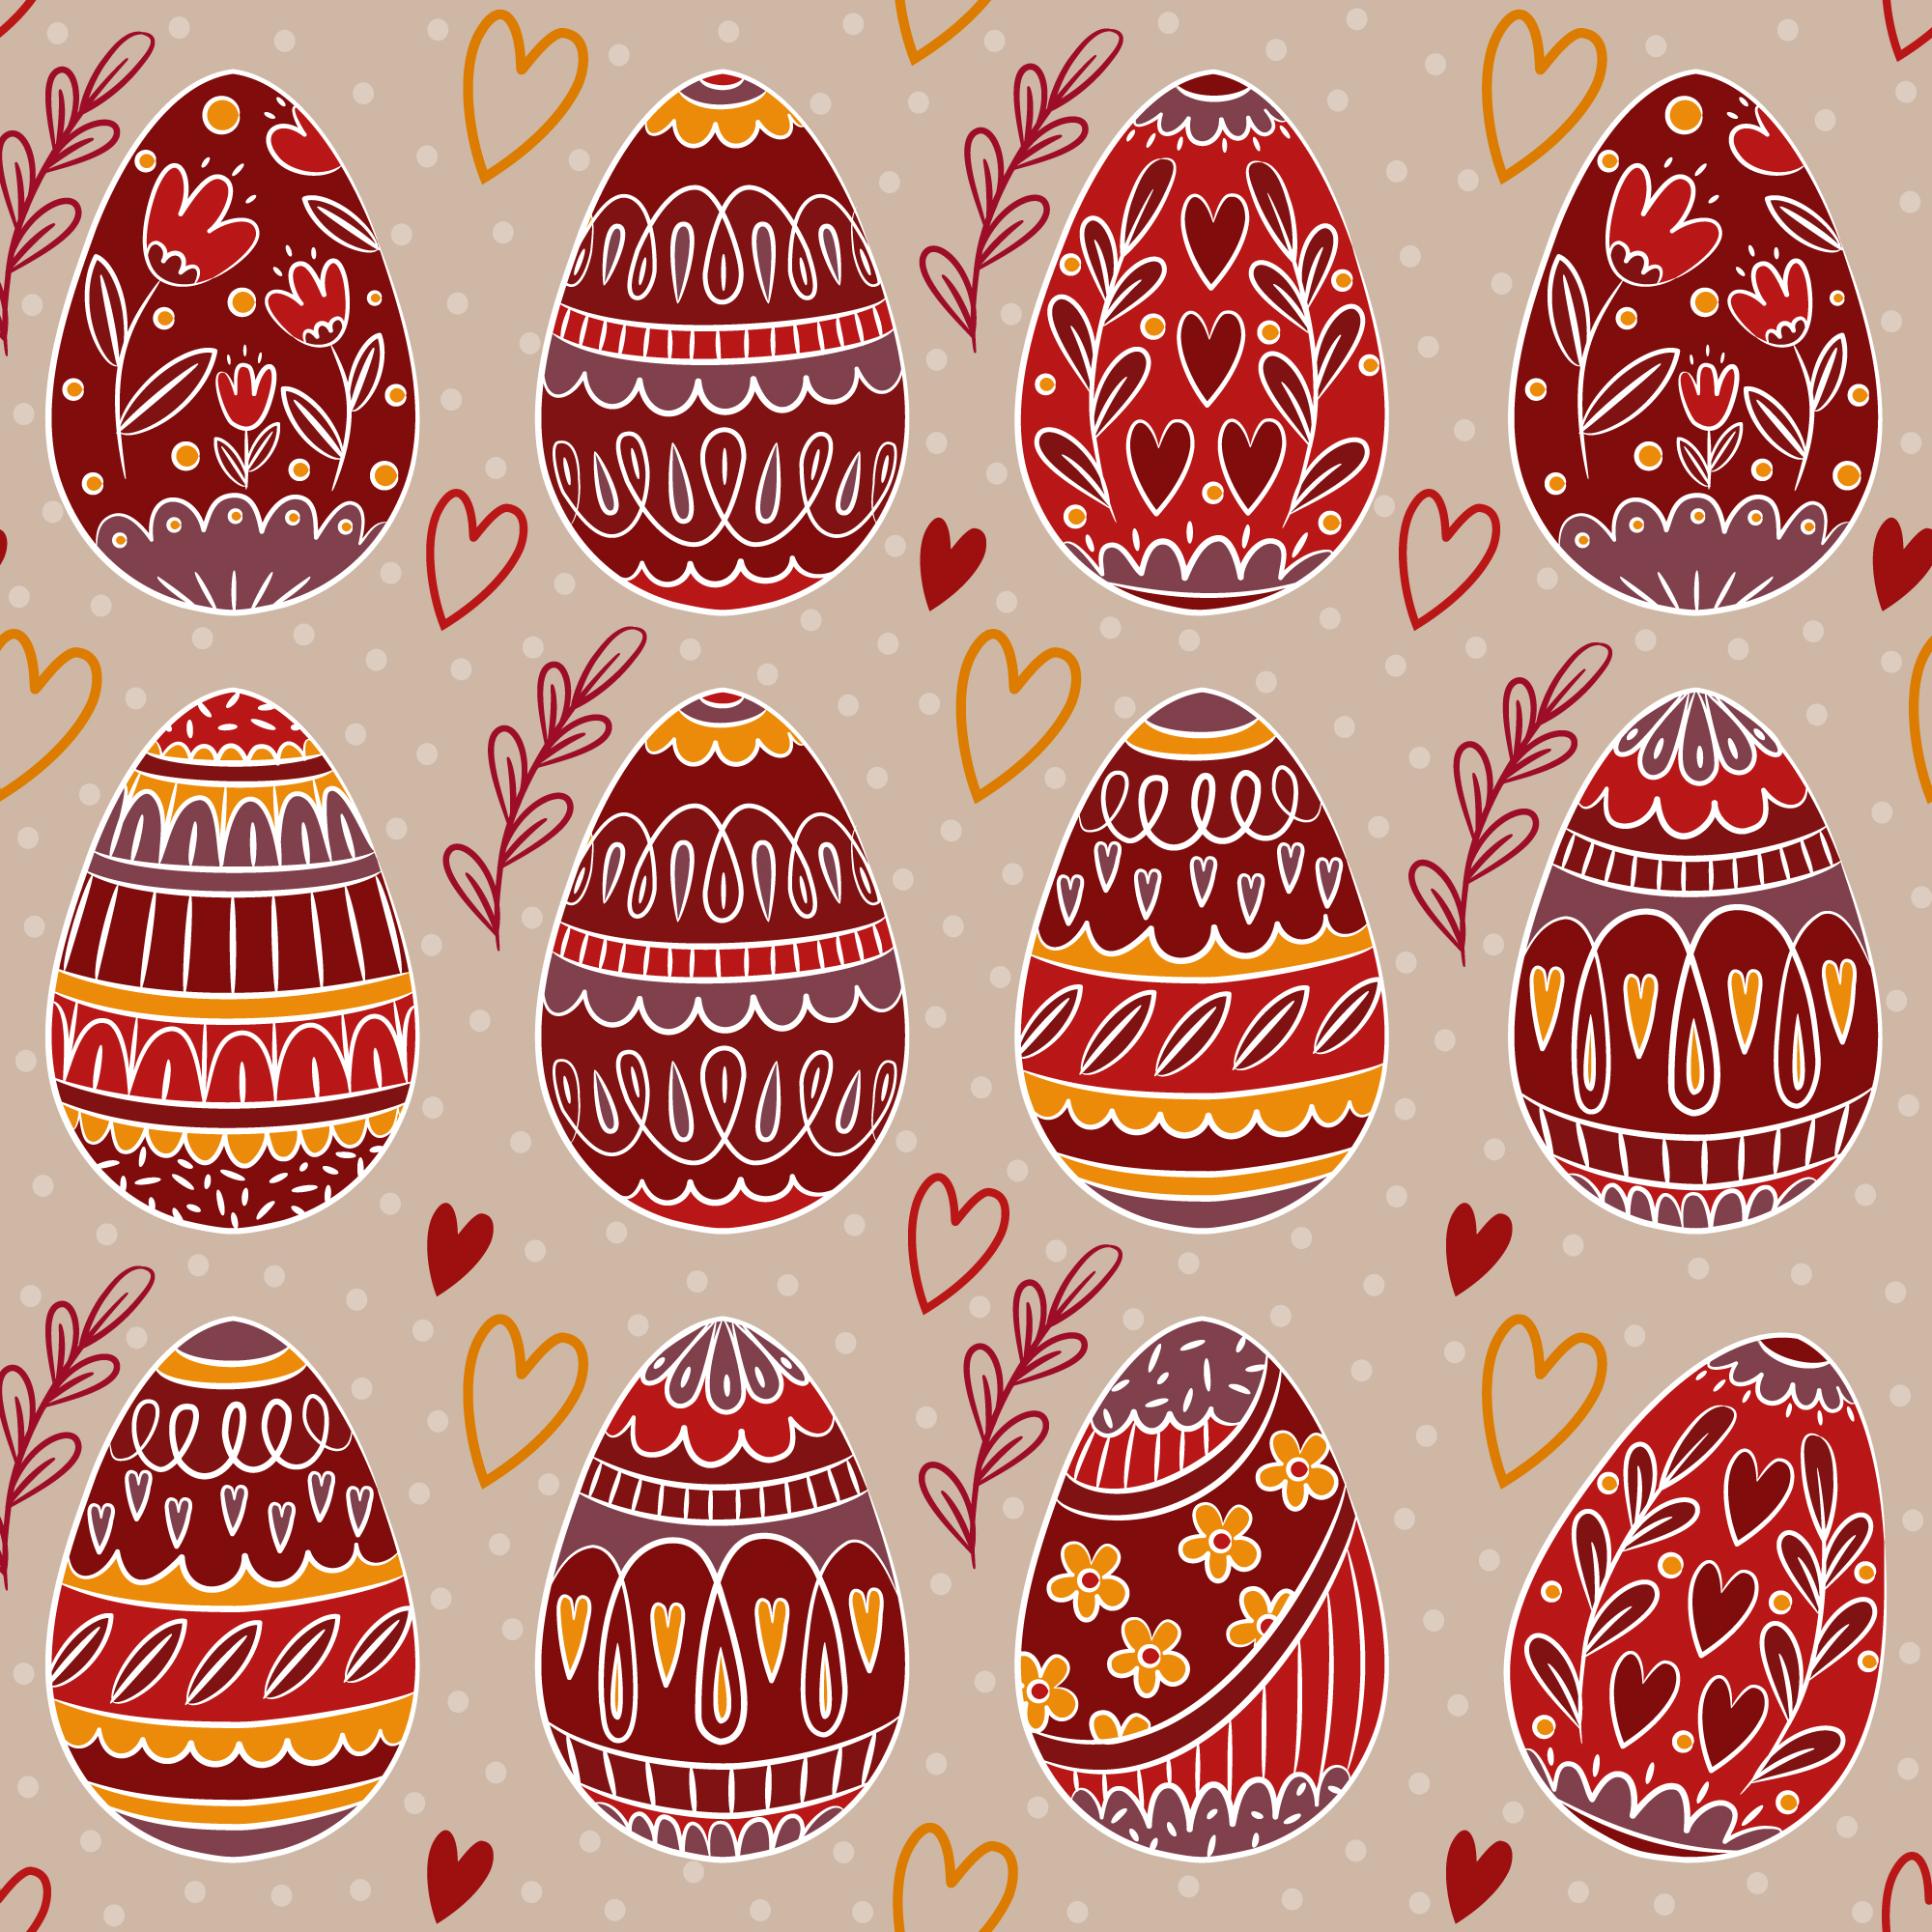 Ostern Muster Design